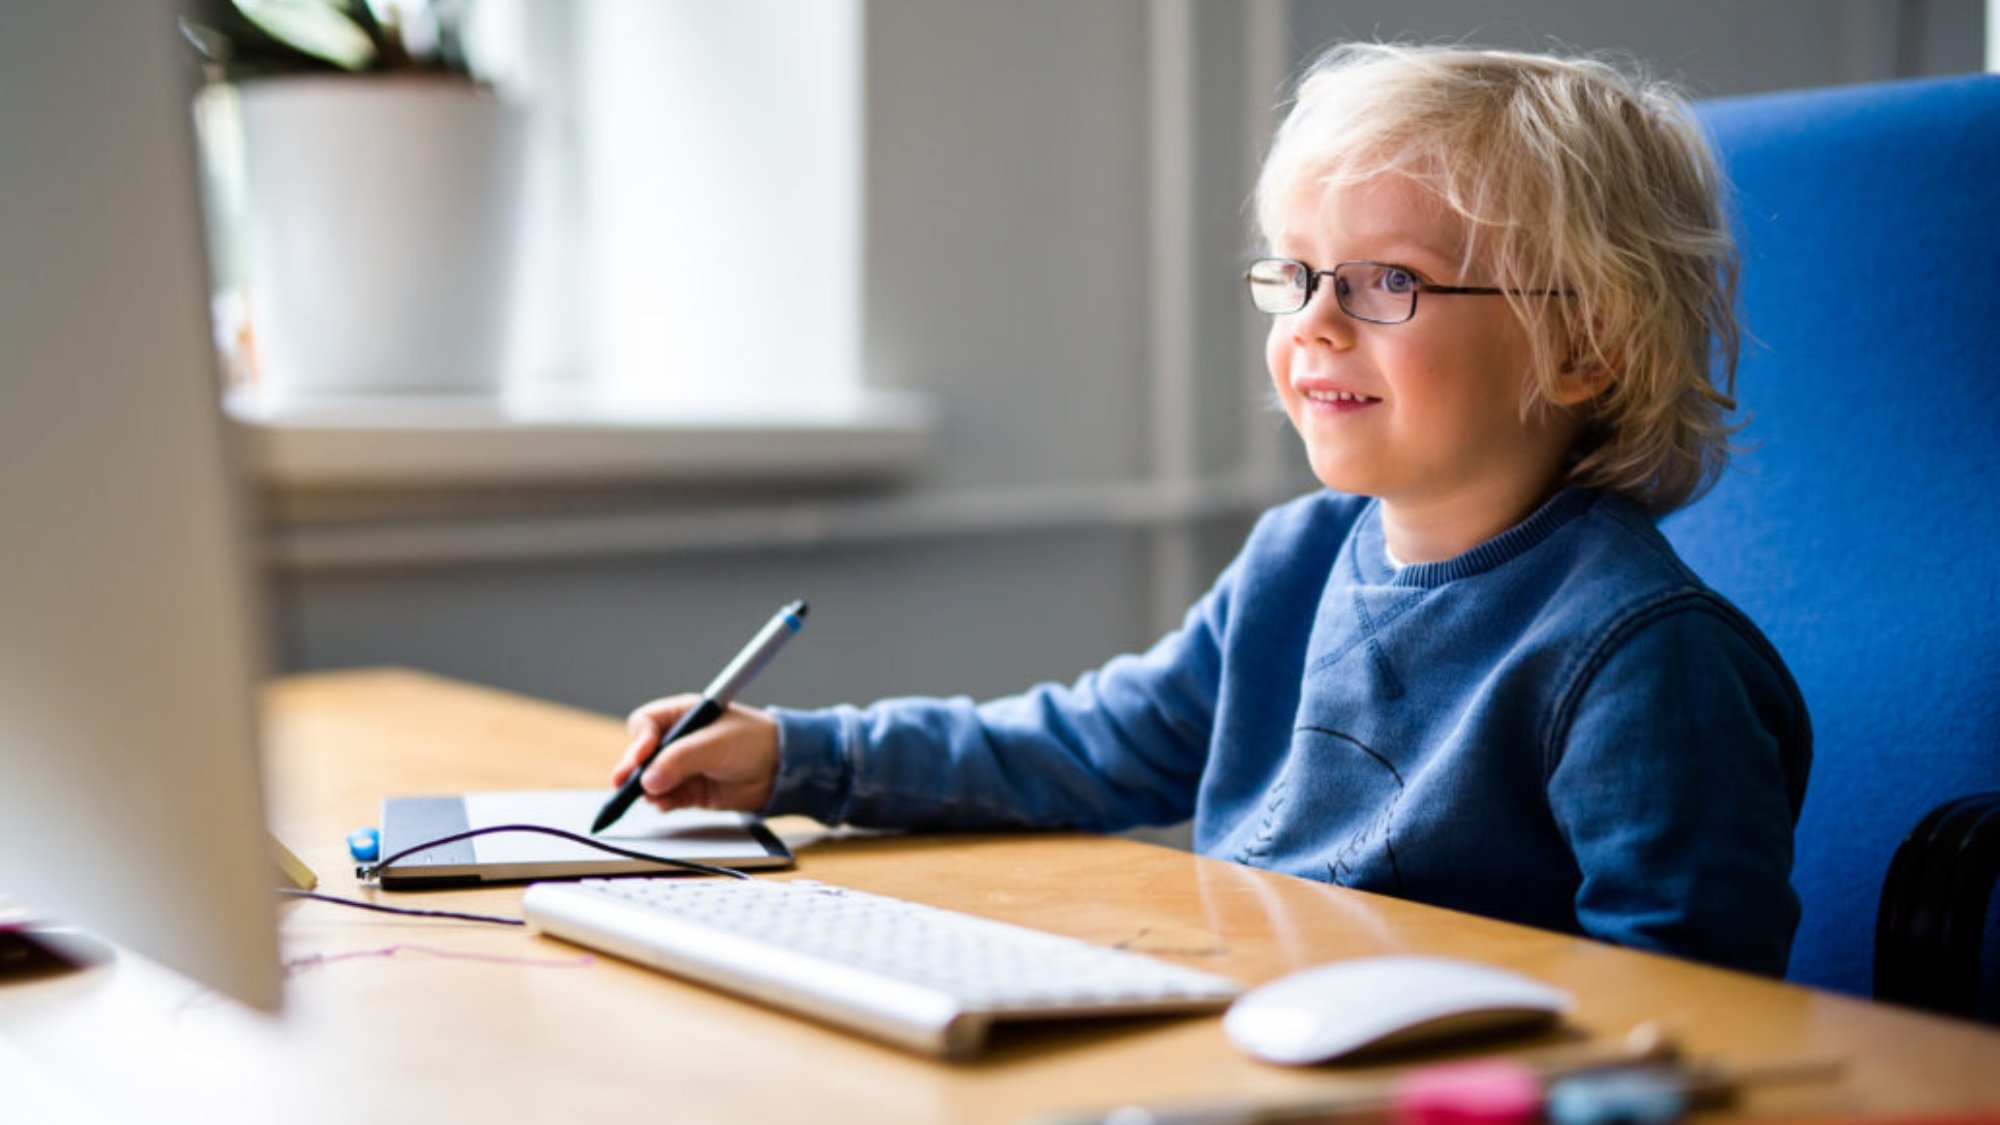 a child studying at home